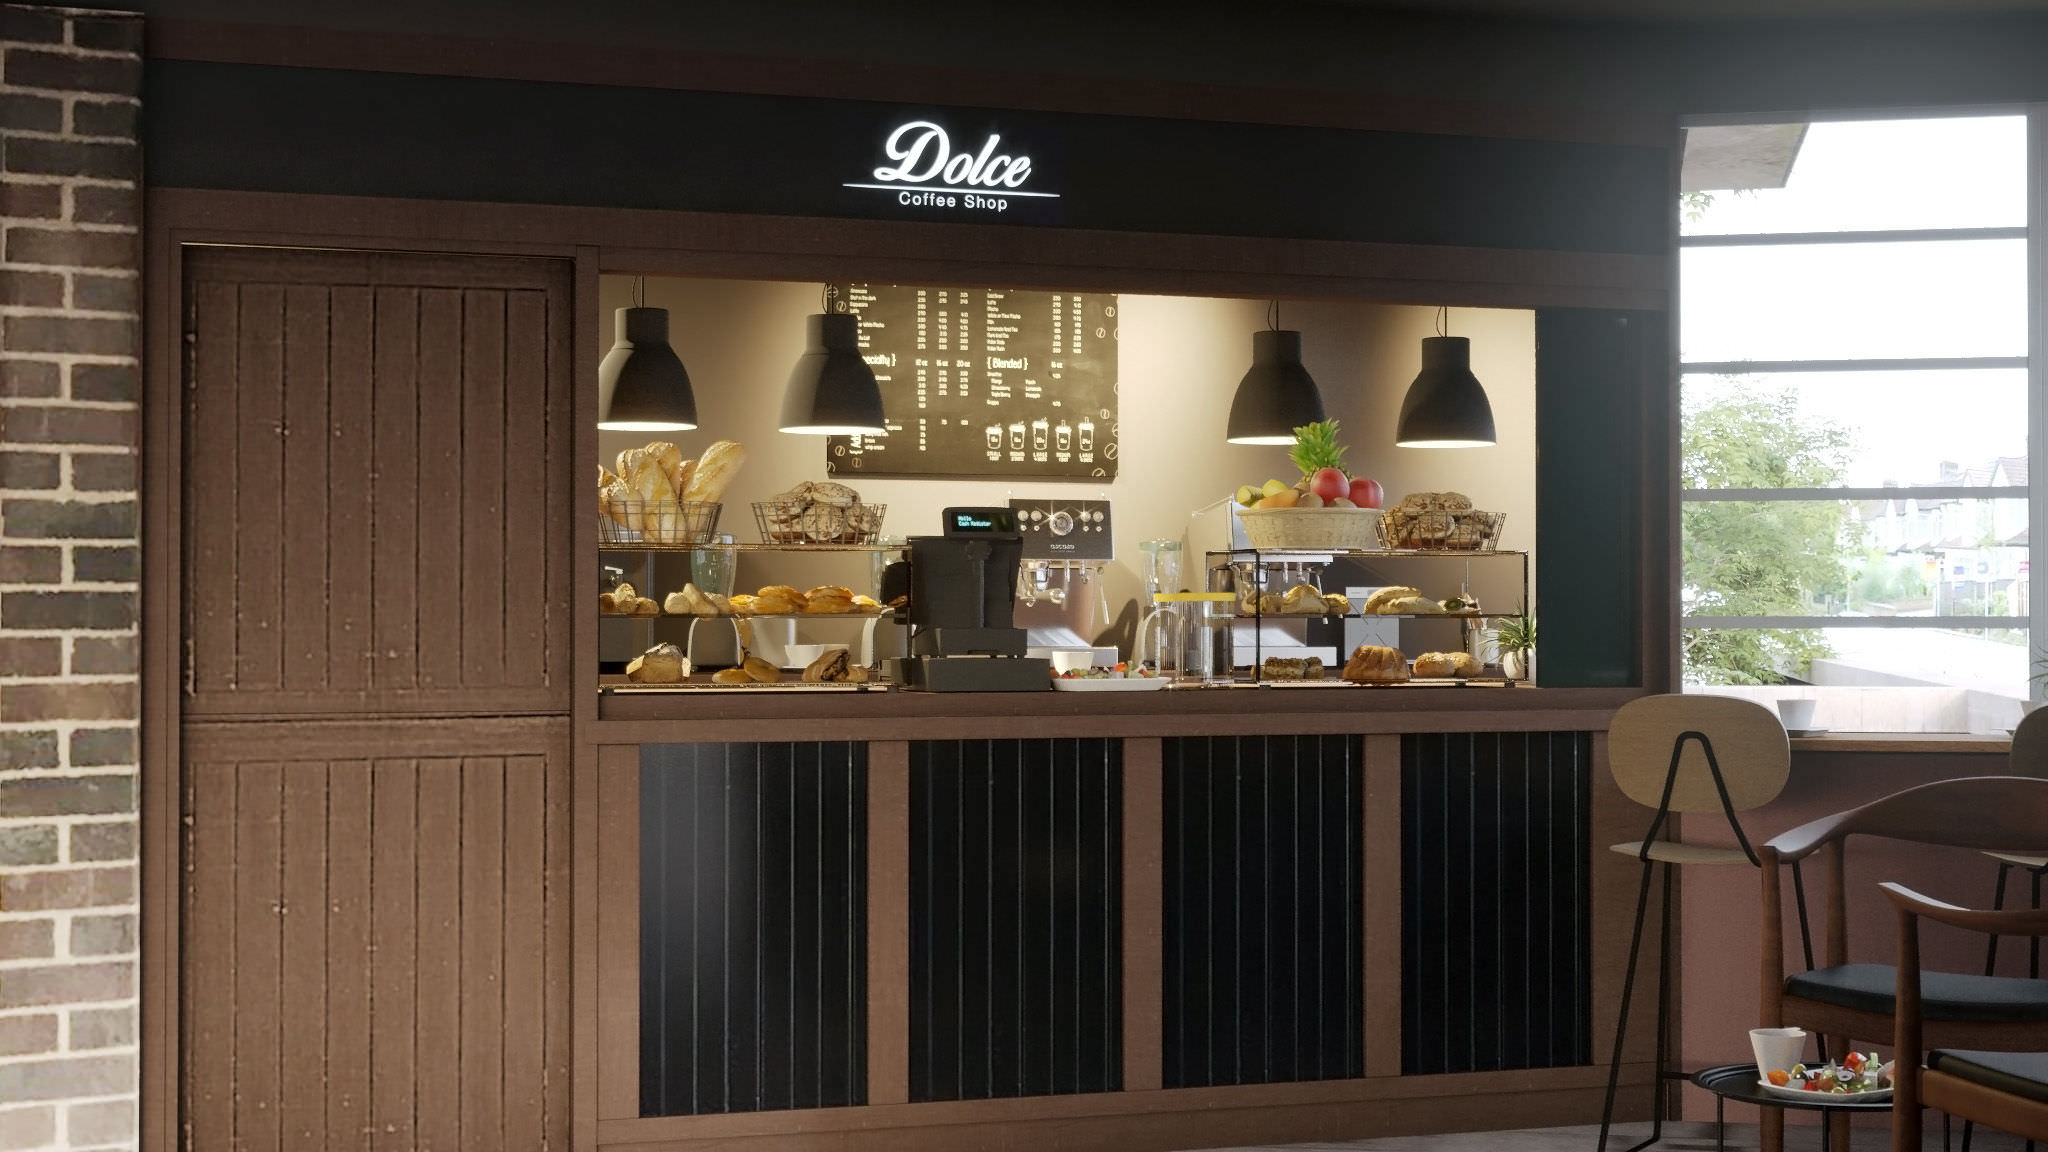 Dolce Coffeeshop Interior Visualization